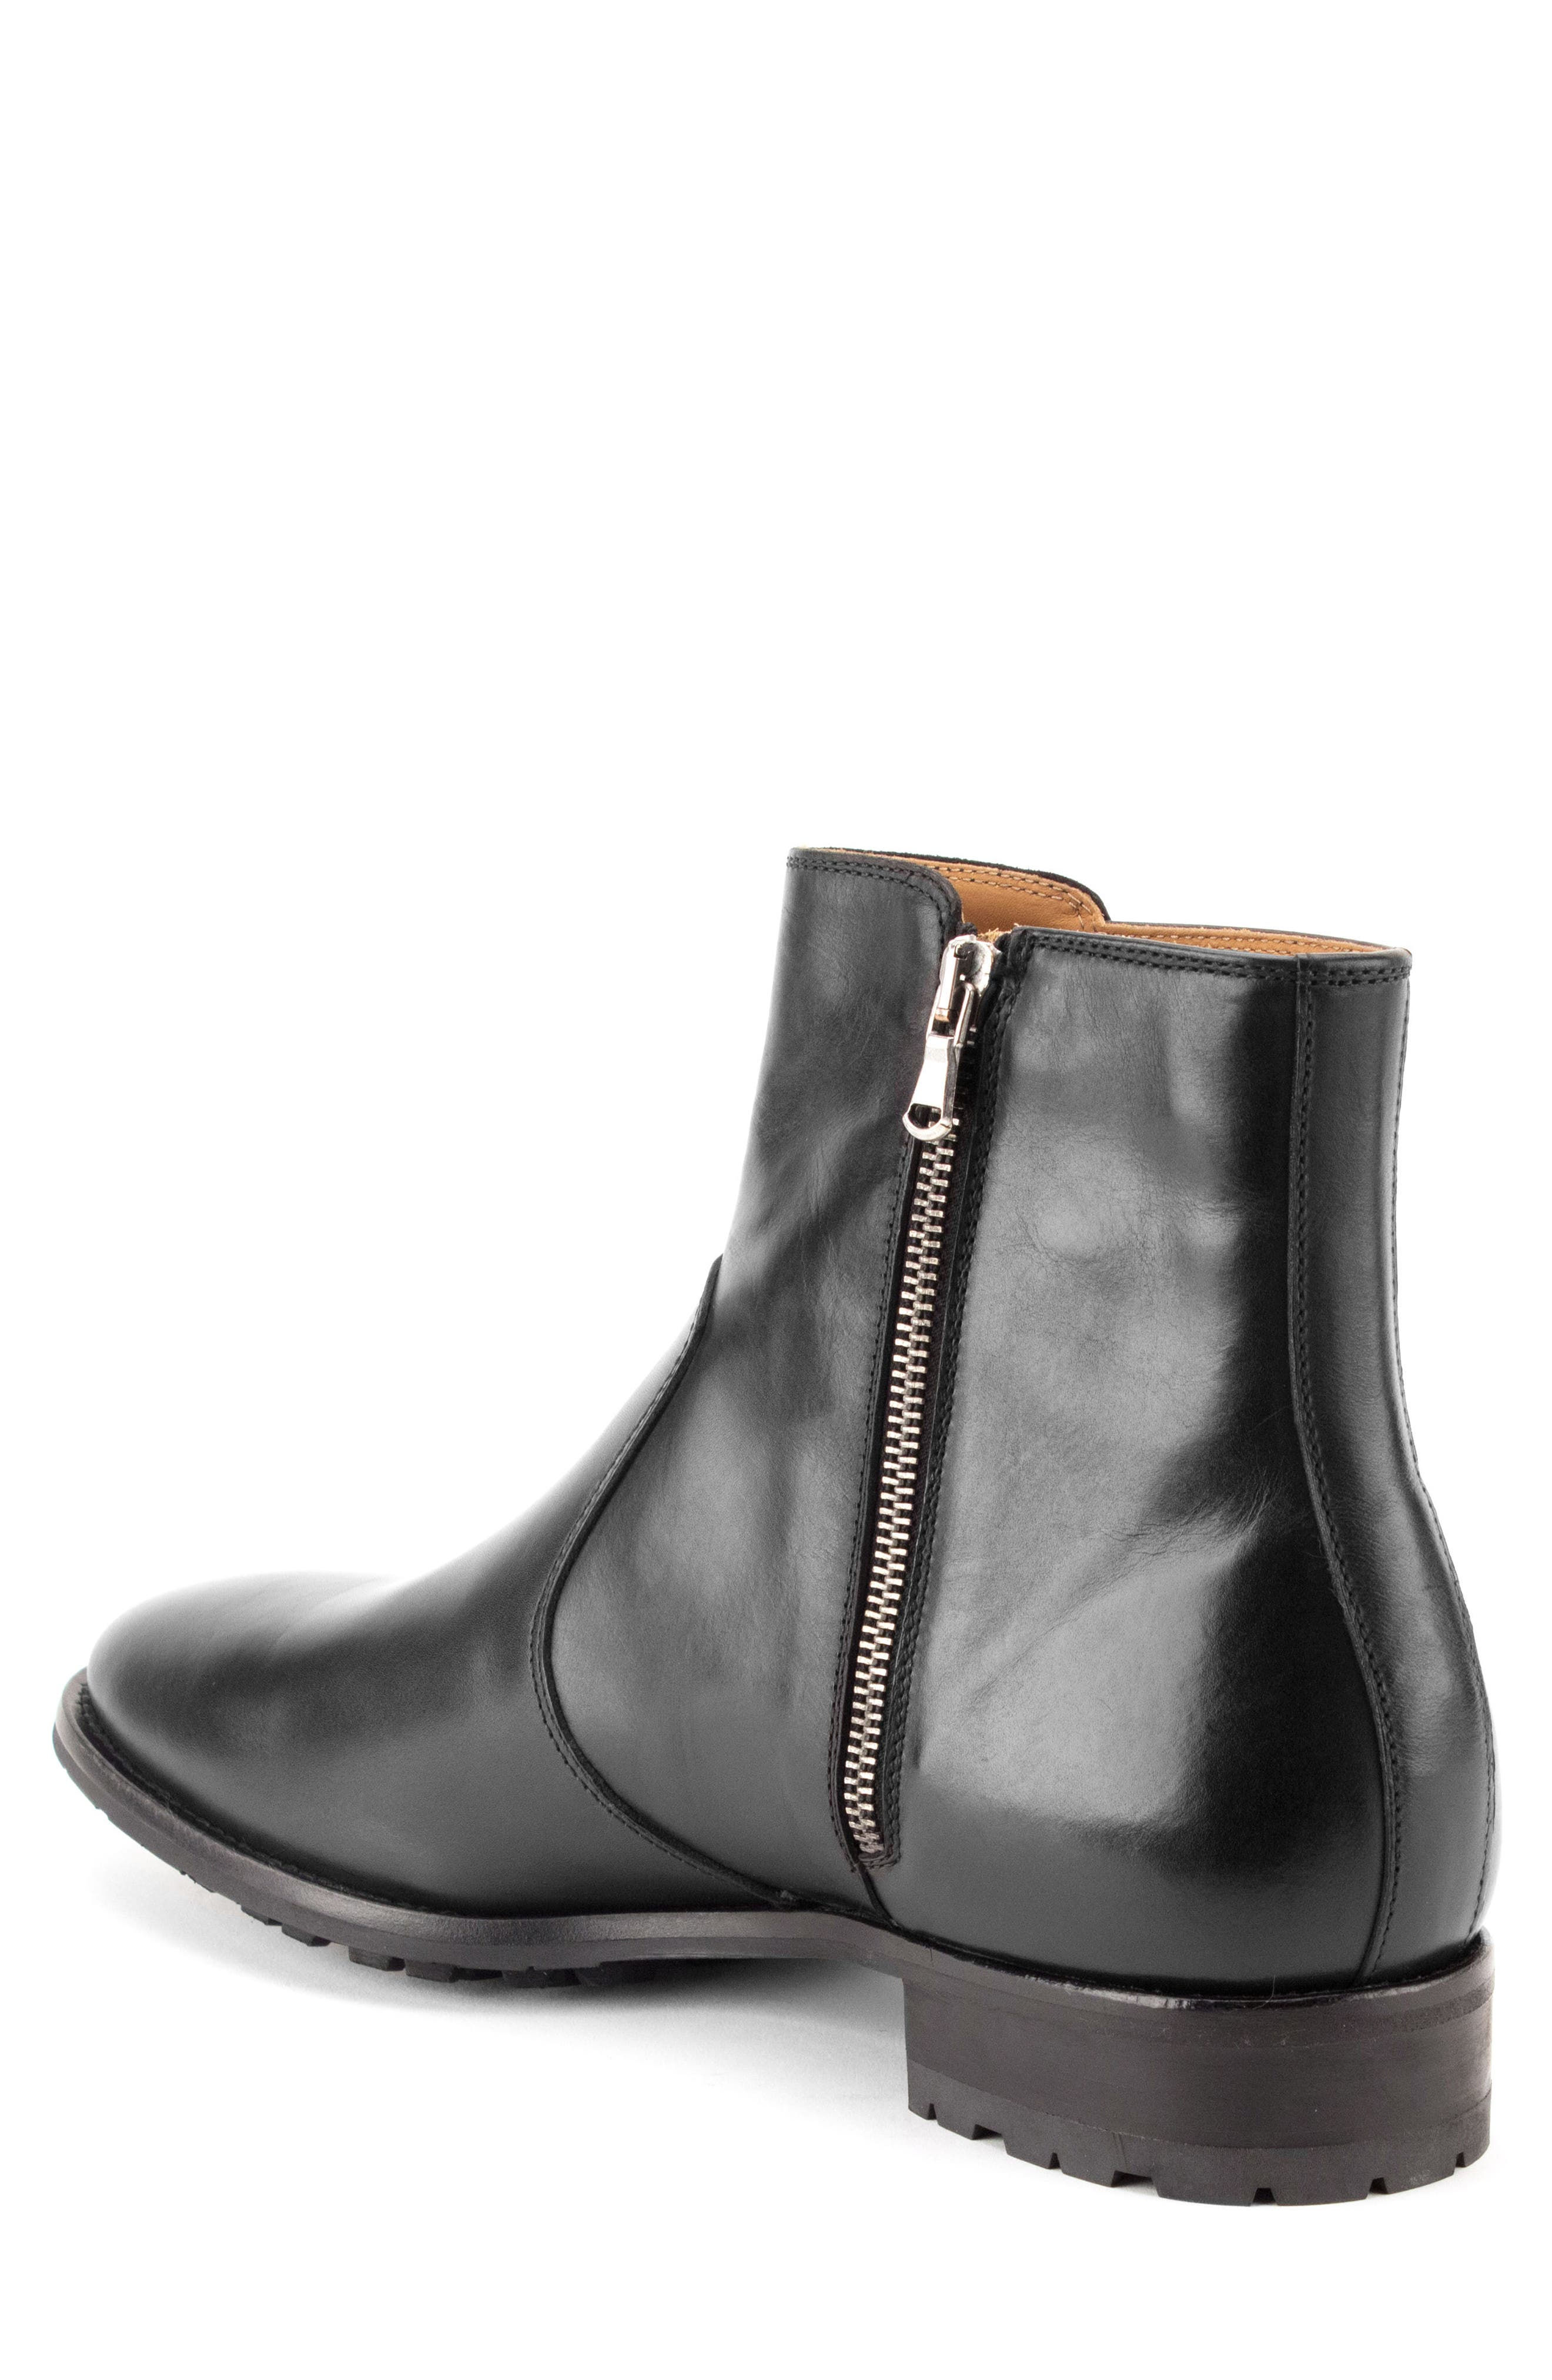 Roberts Zip Boot,                             Alternate thumbnail 2, color,                             BLACK LEATHER